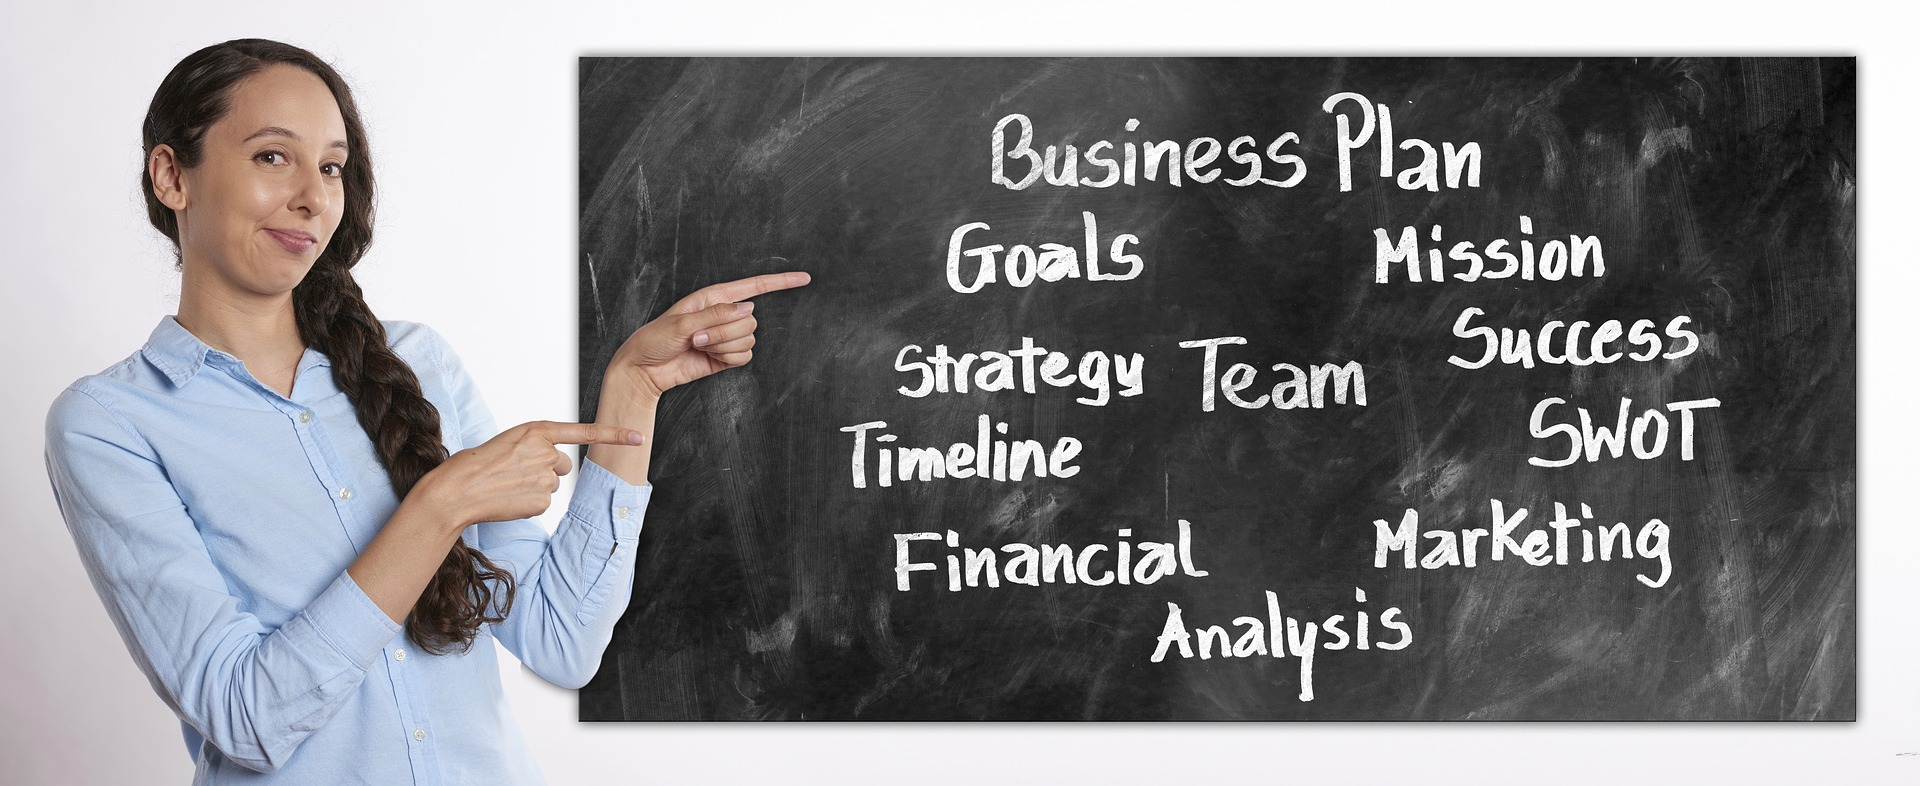 Set Goals Together and Create a Financial Plan